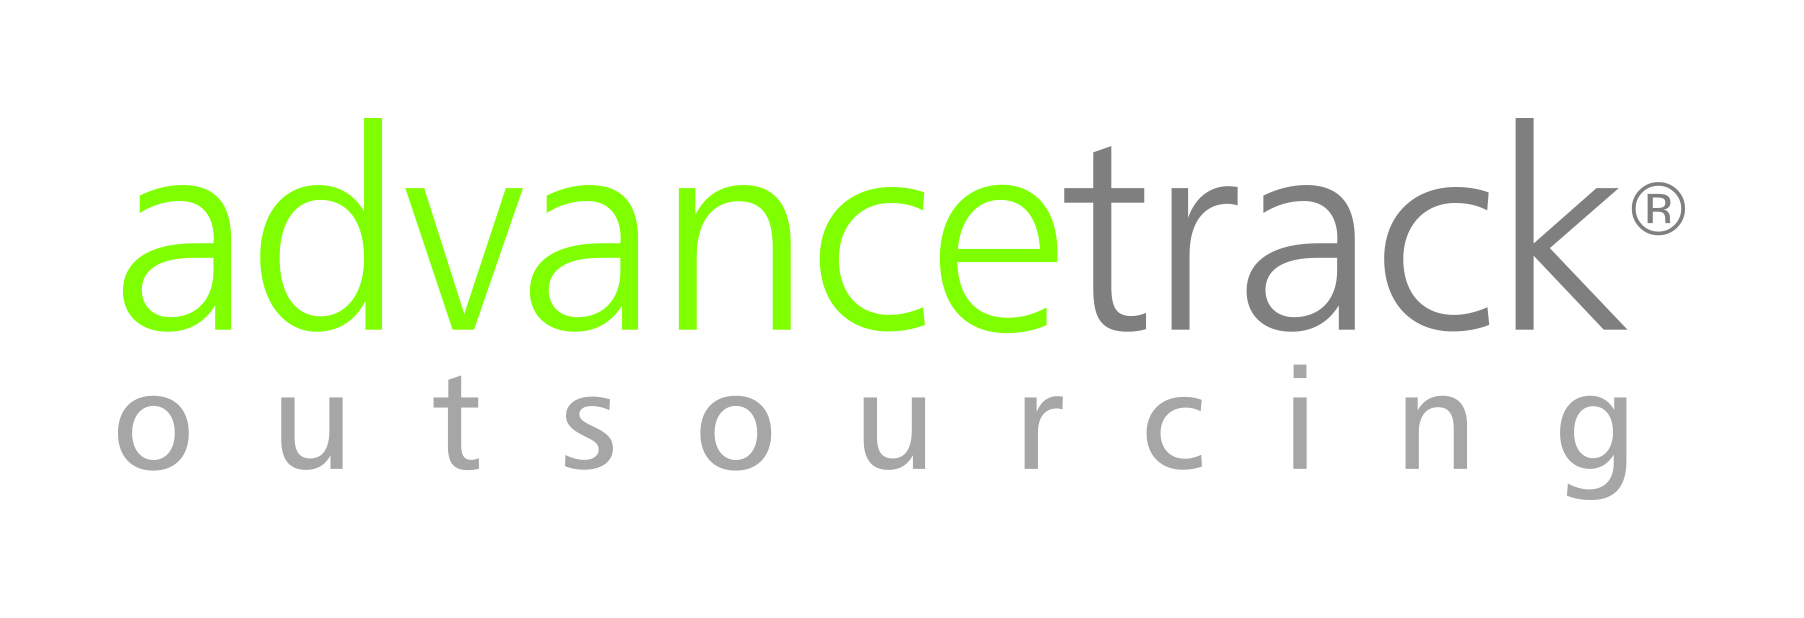 AdvanceTrack Outsourcing